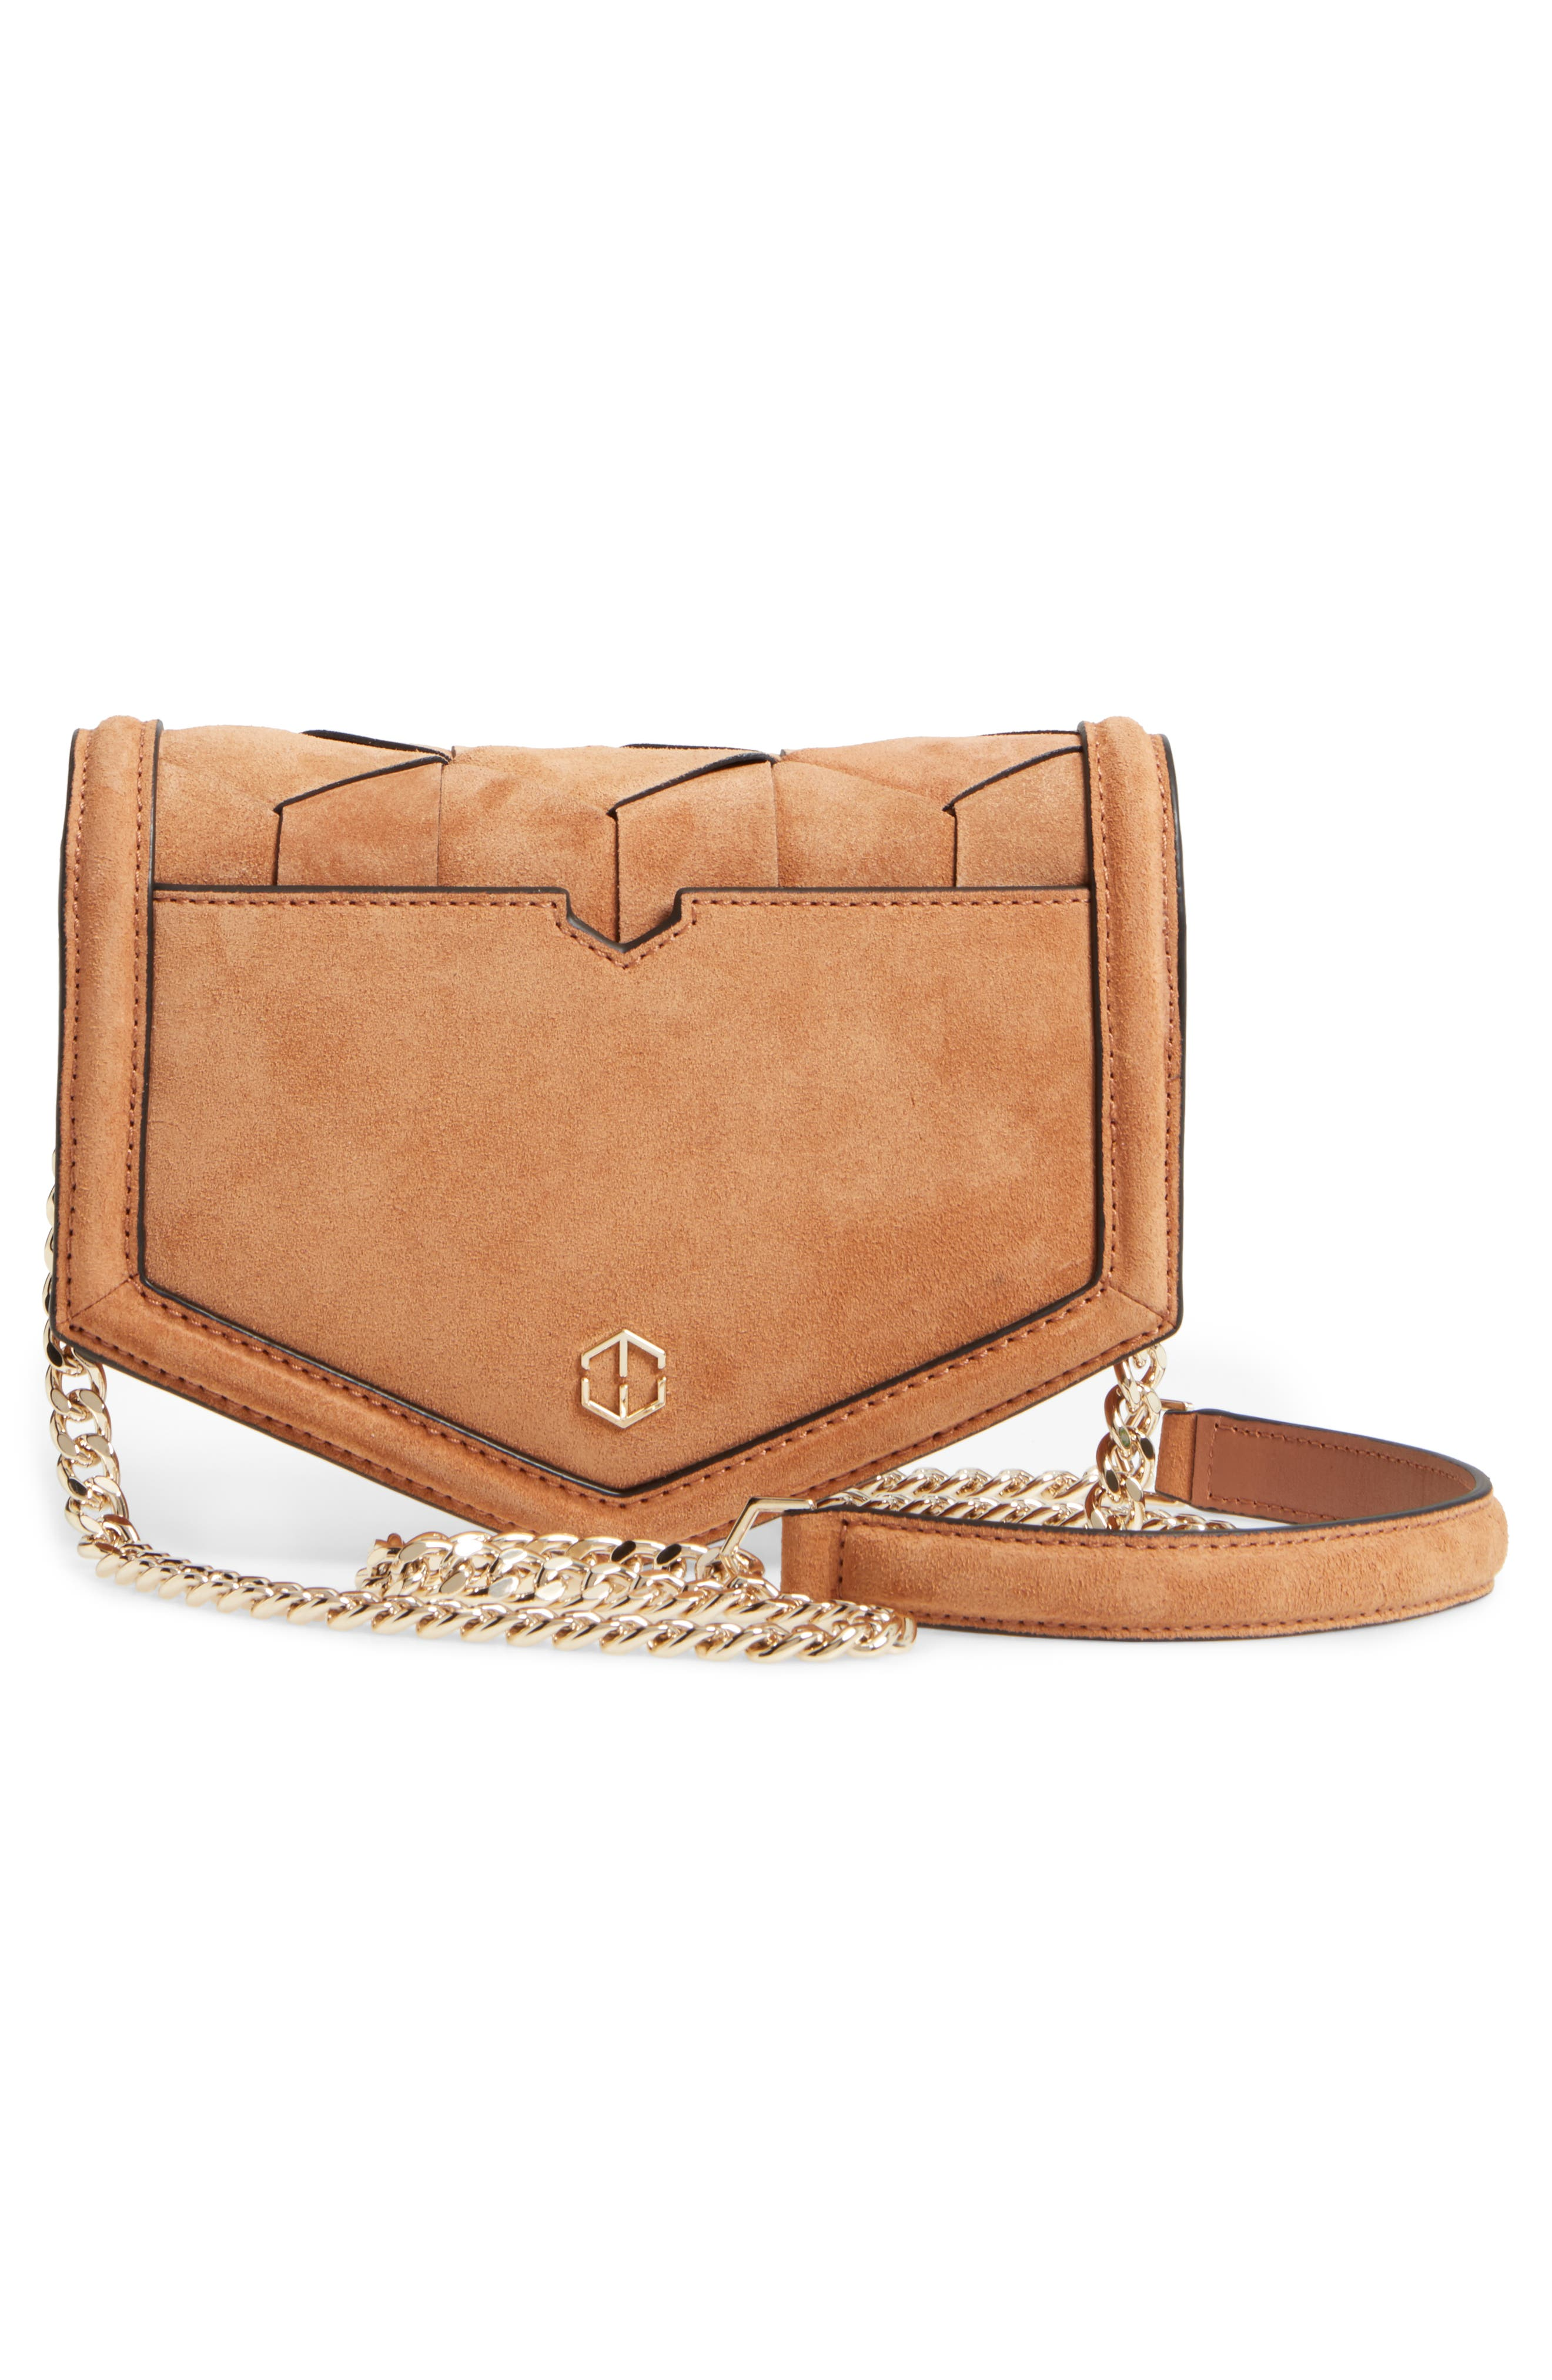 Jaunt Woven Calfskin Suede Wallet on a Chain,                             Alternate thumbnail 3, color,                             200